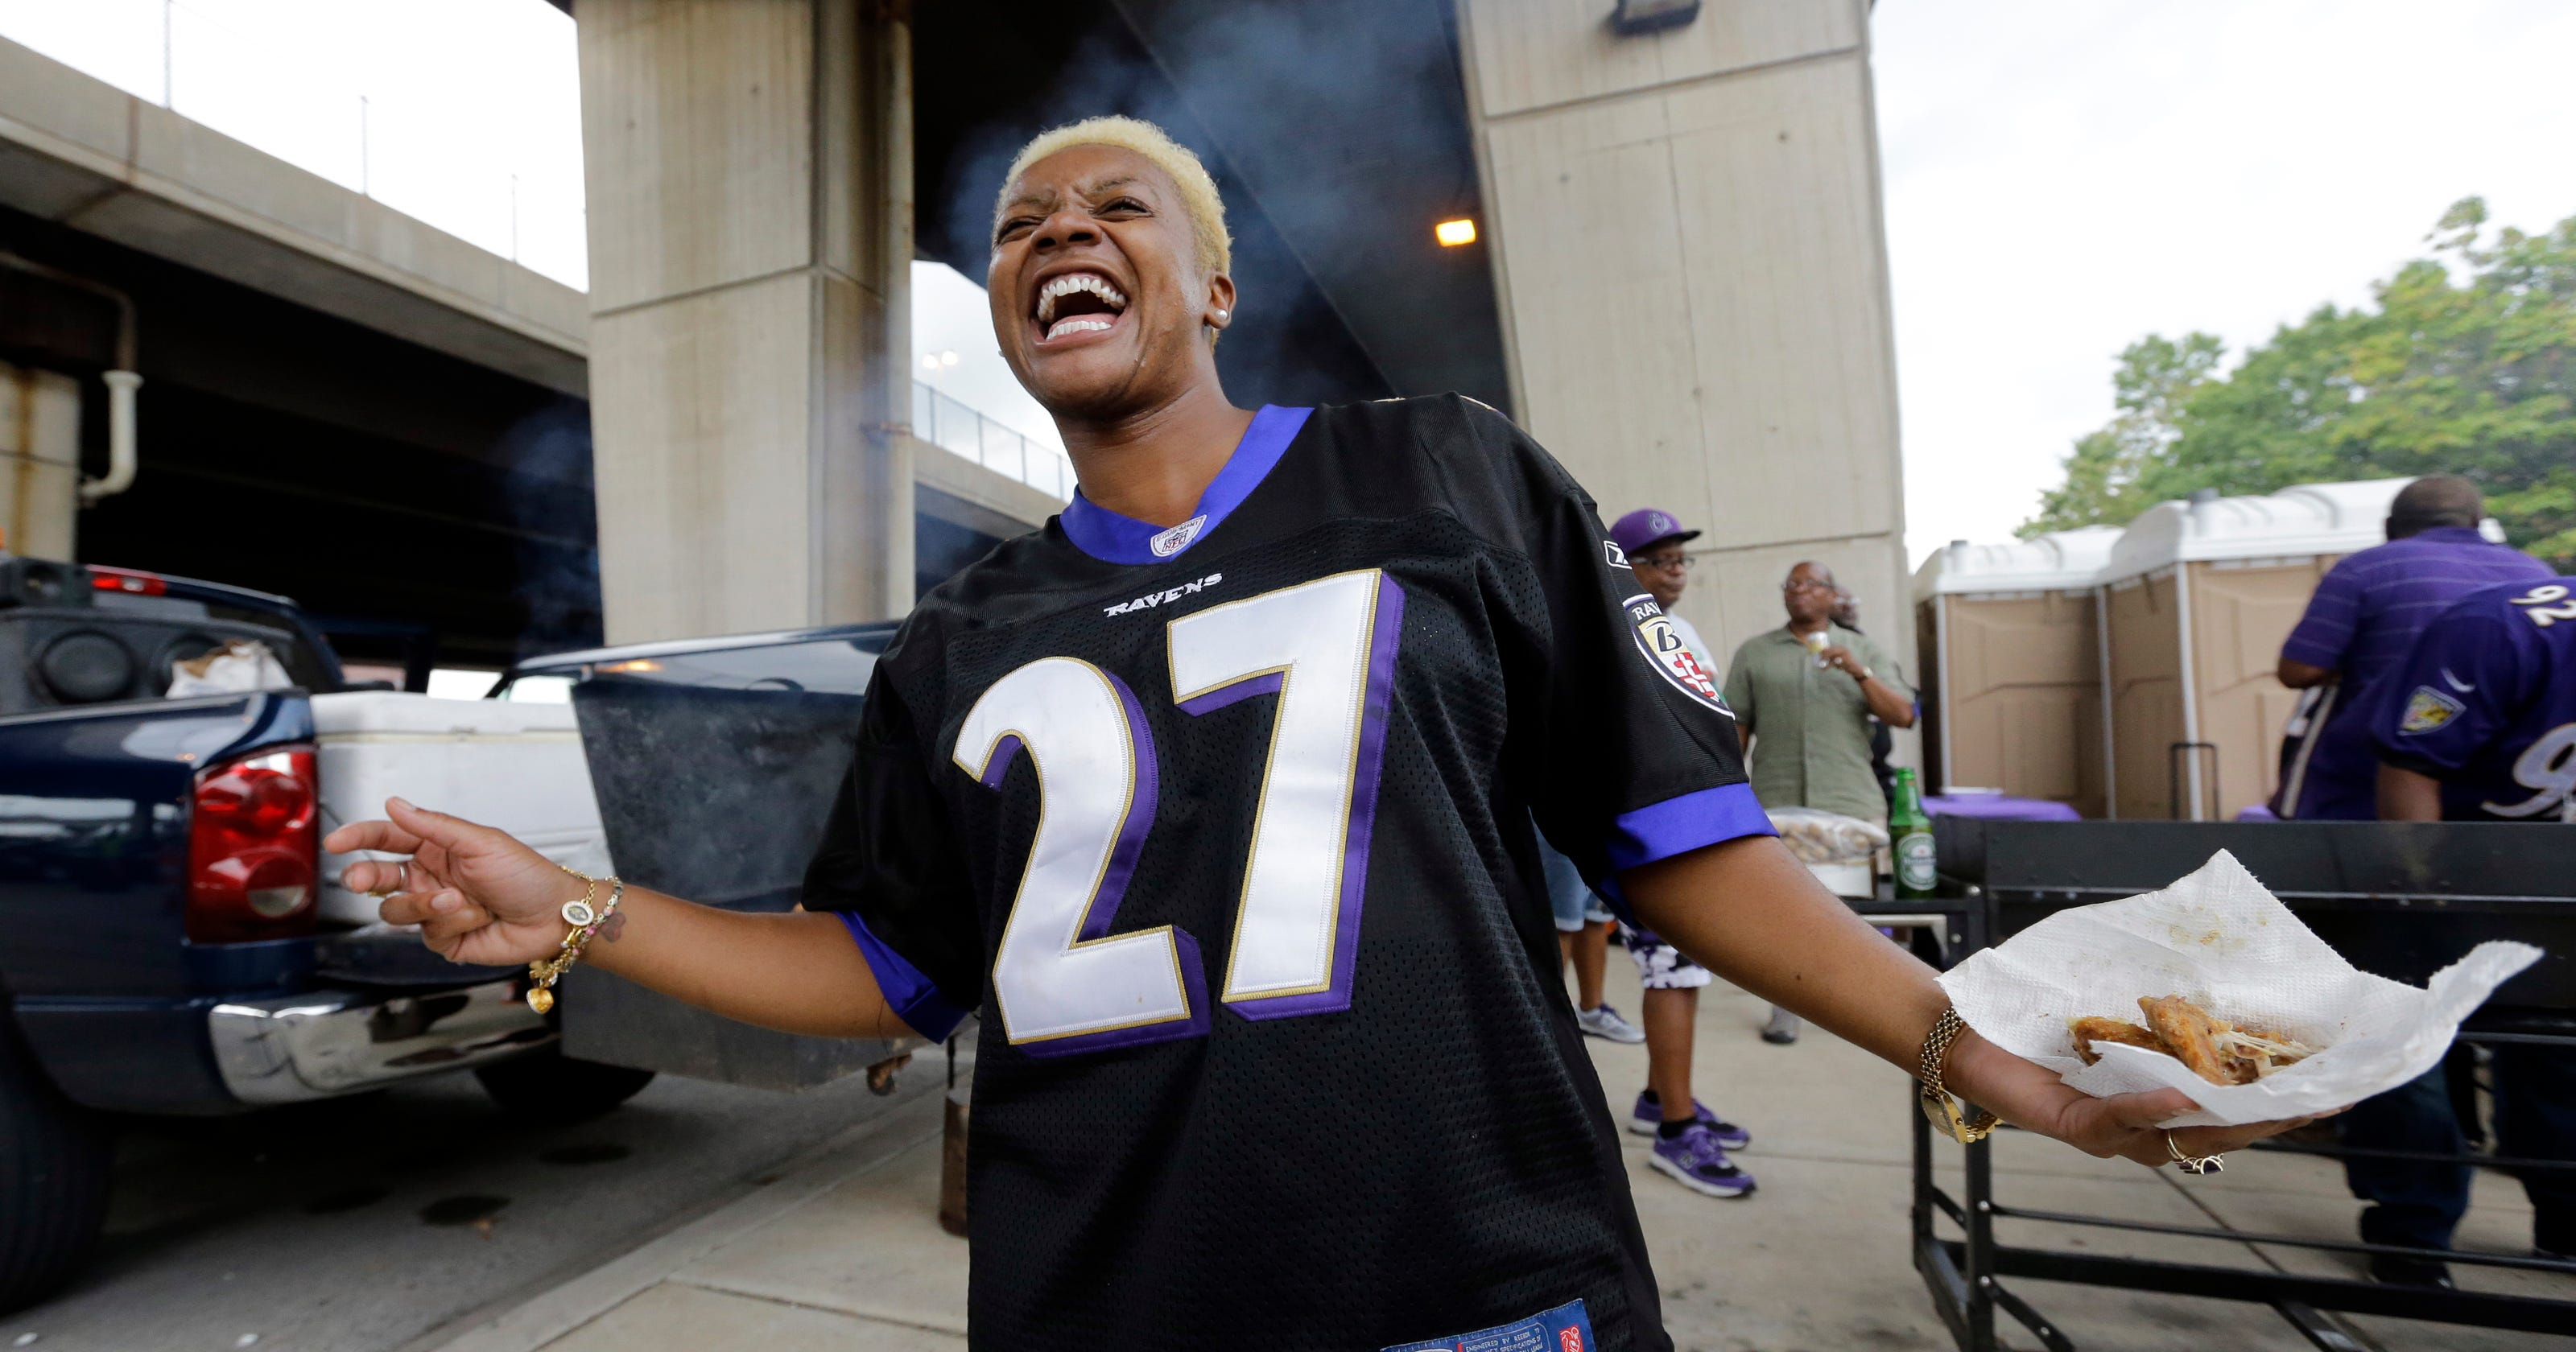 7bc233c4977 Boivin: Fans wearing Ray Rice jerseys? Disgusting